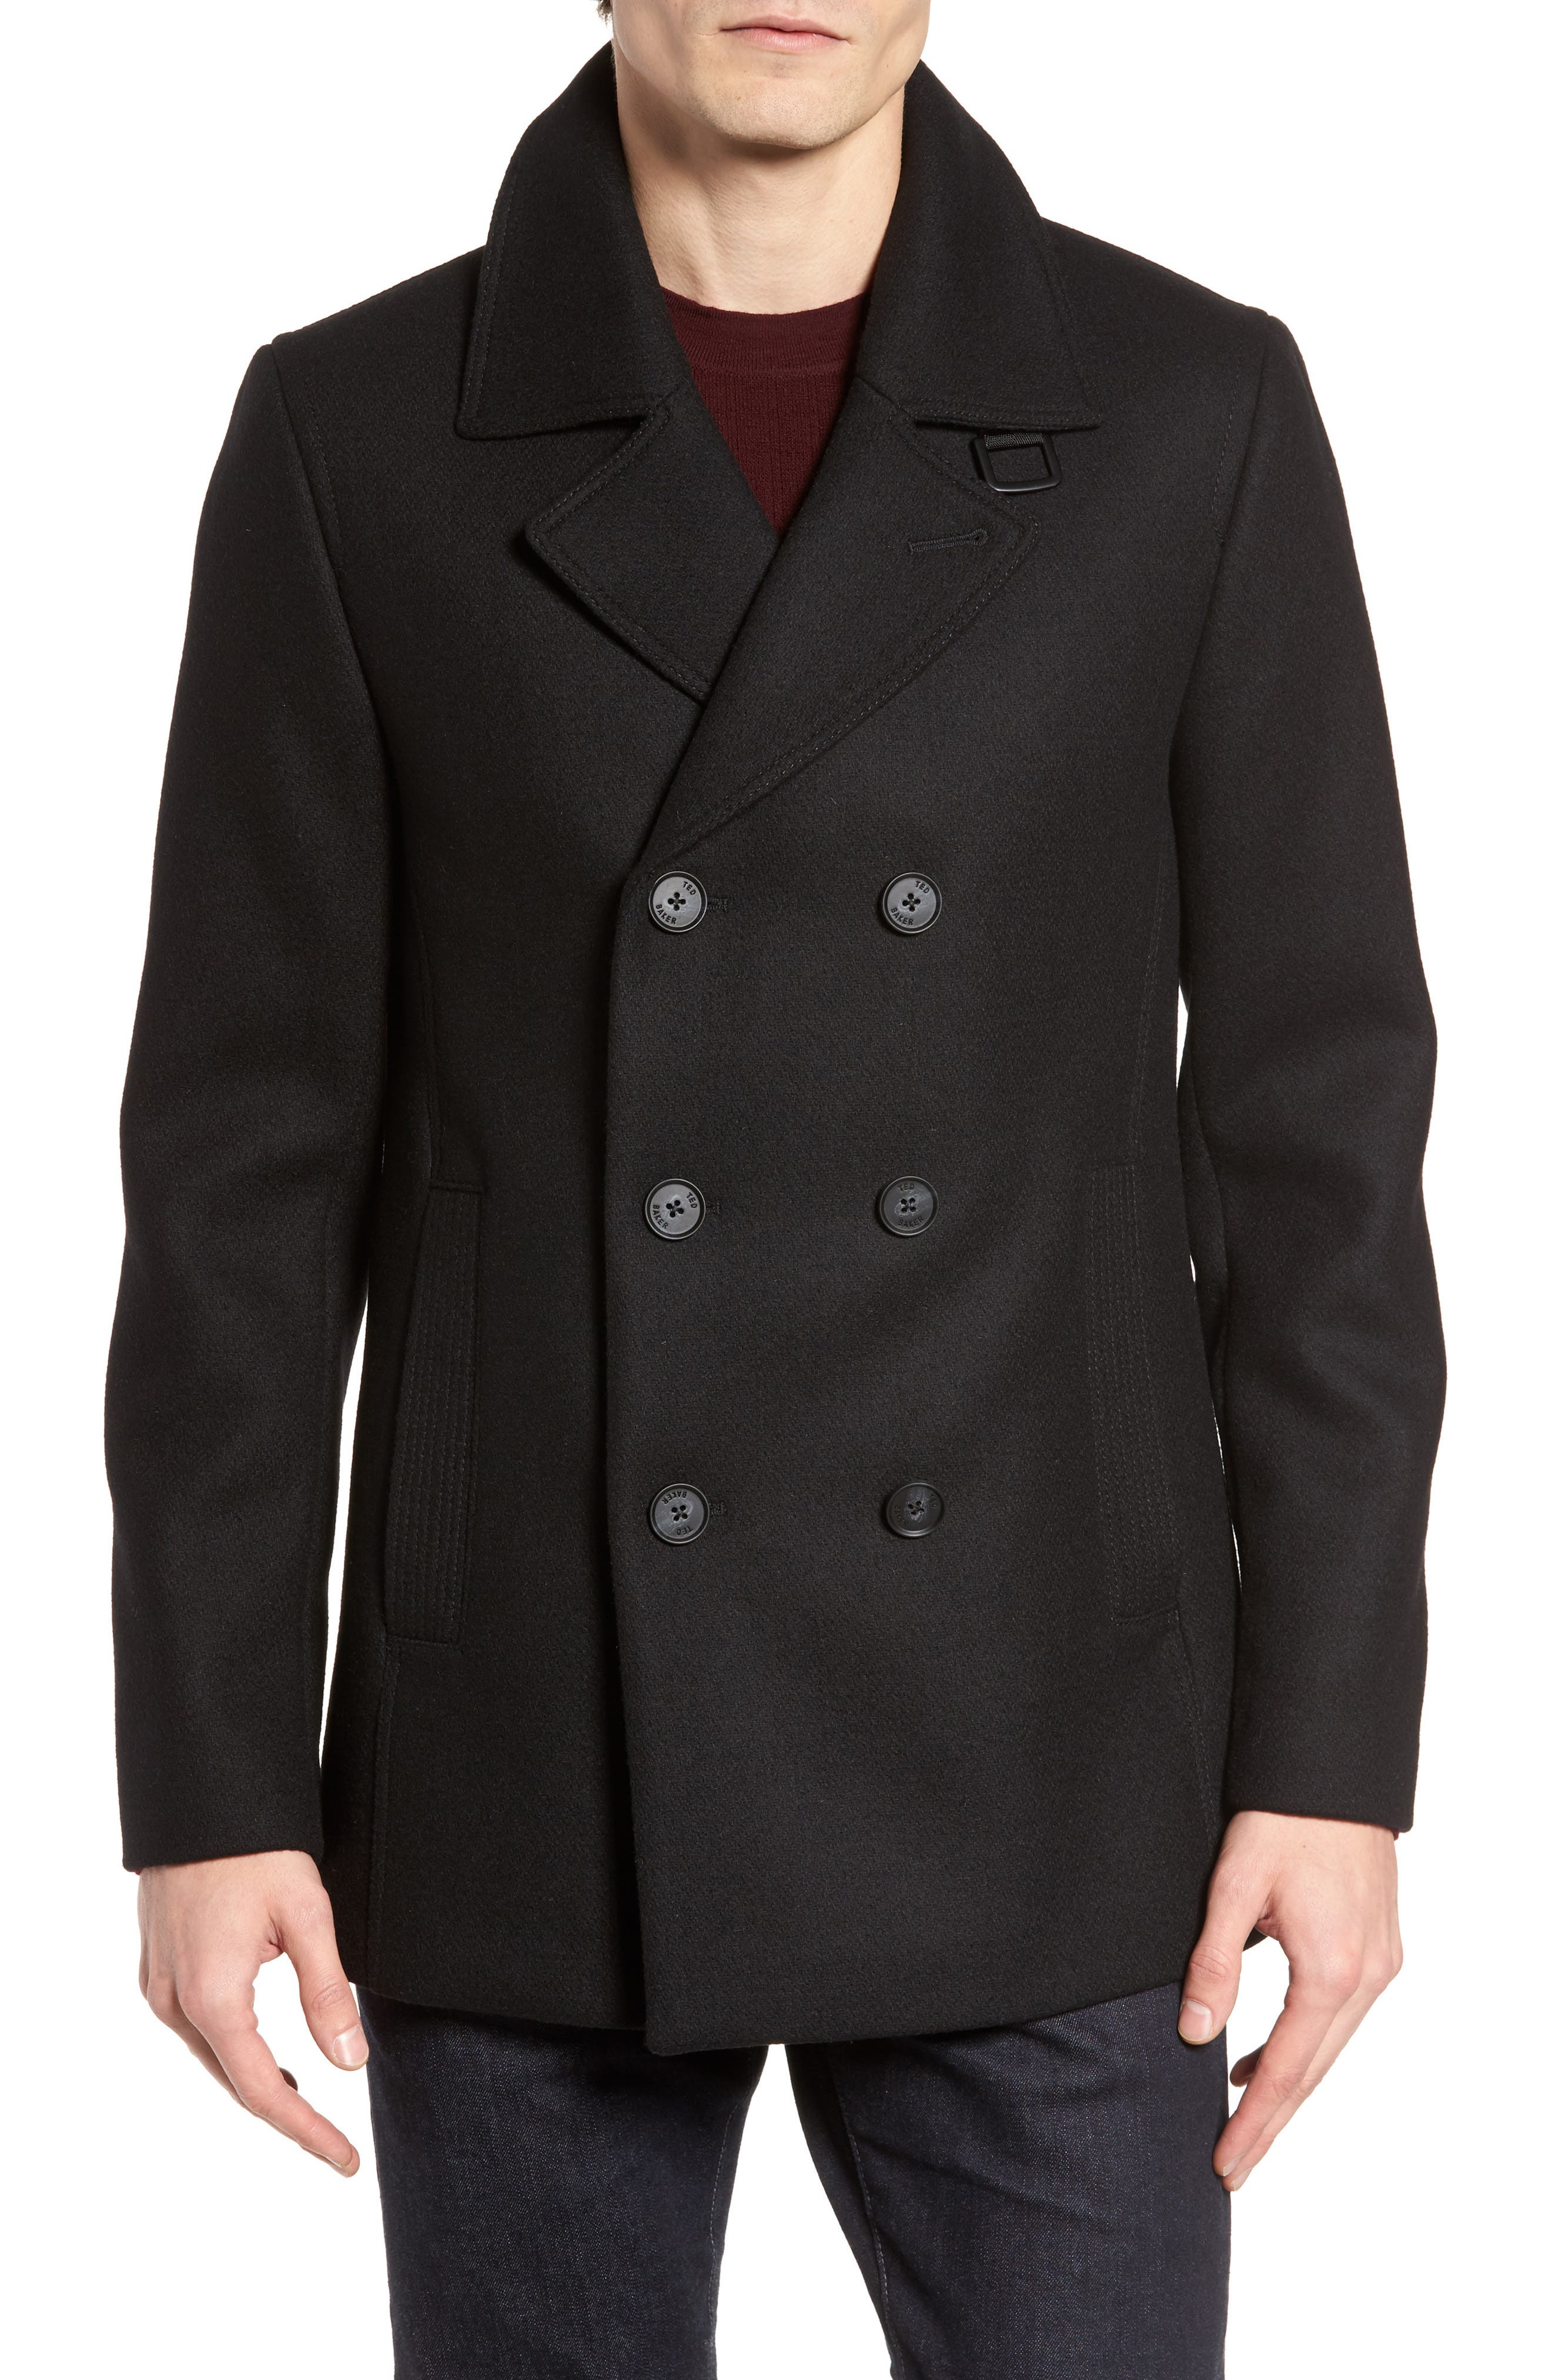 Main Image - Ted Baker London Zachary Trim Fit Double Breasted Peacoat